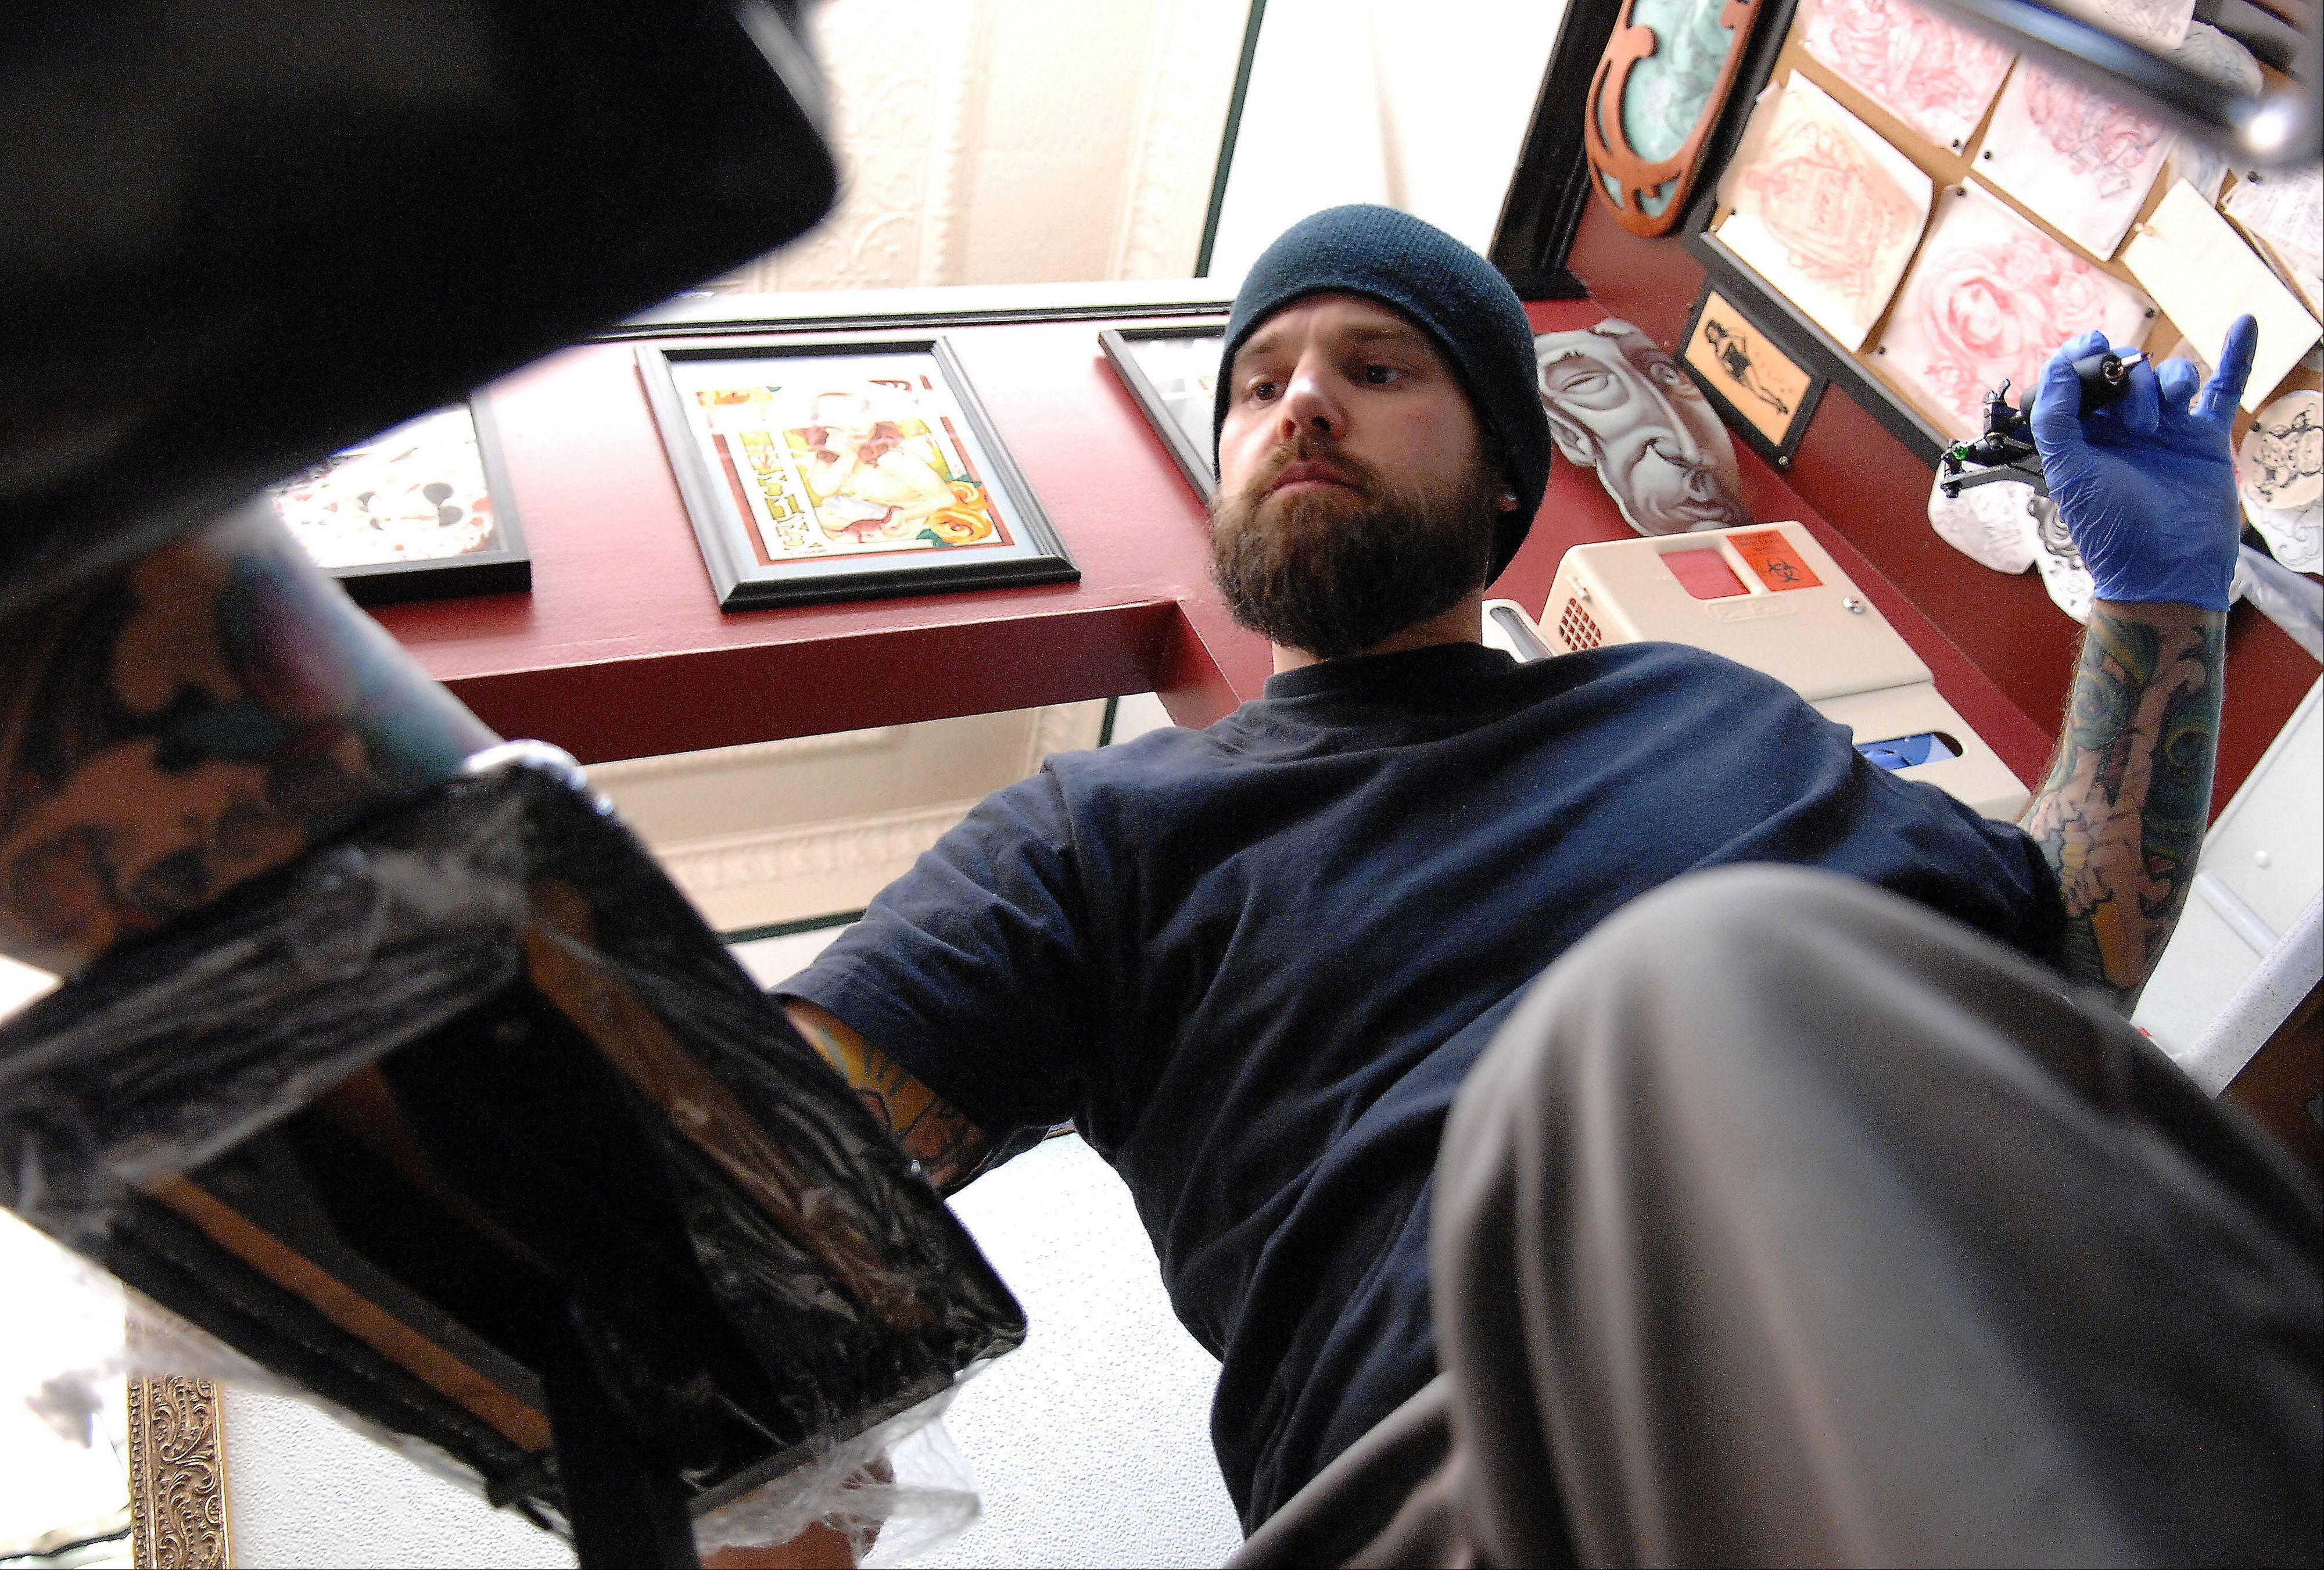 Tattoo artist Erik Thvedt pulls back to take a look at his work.